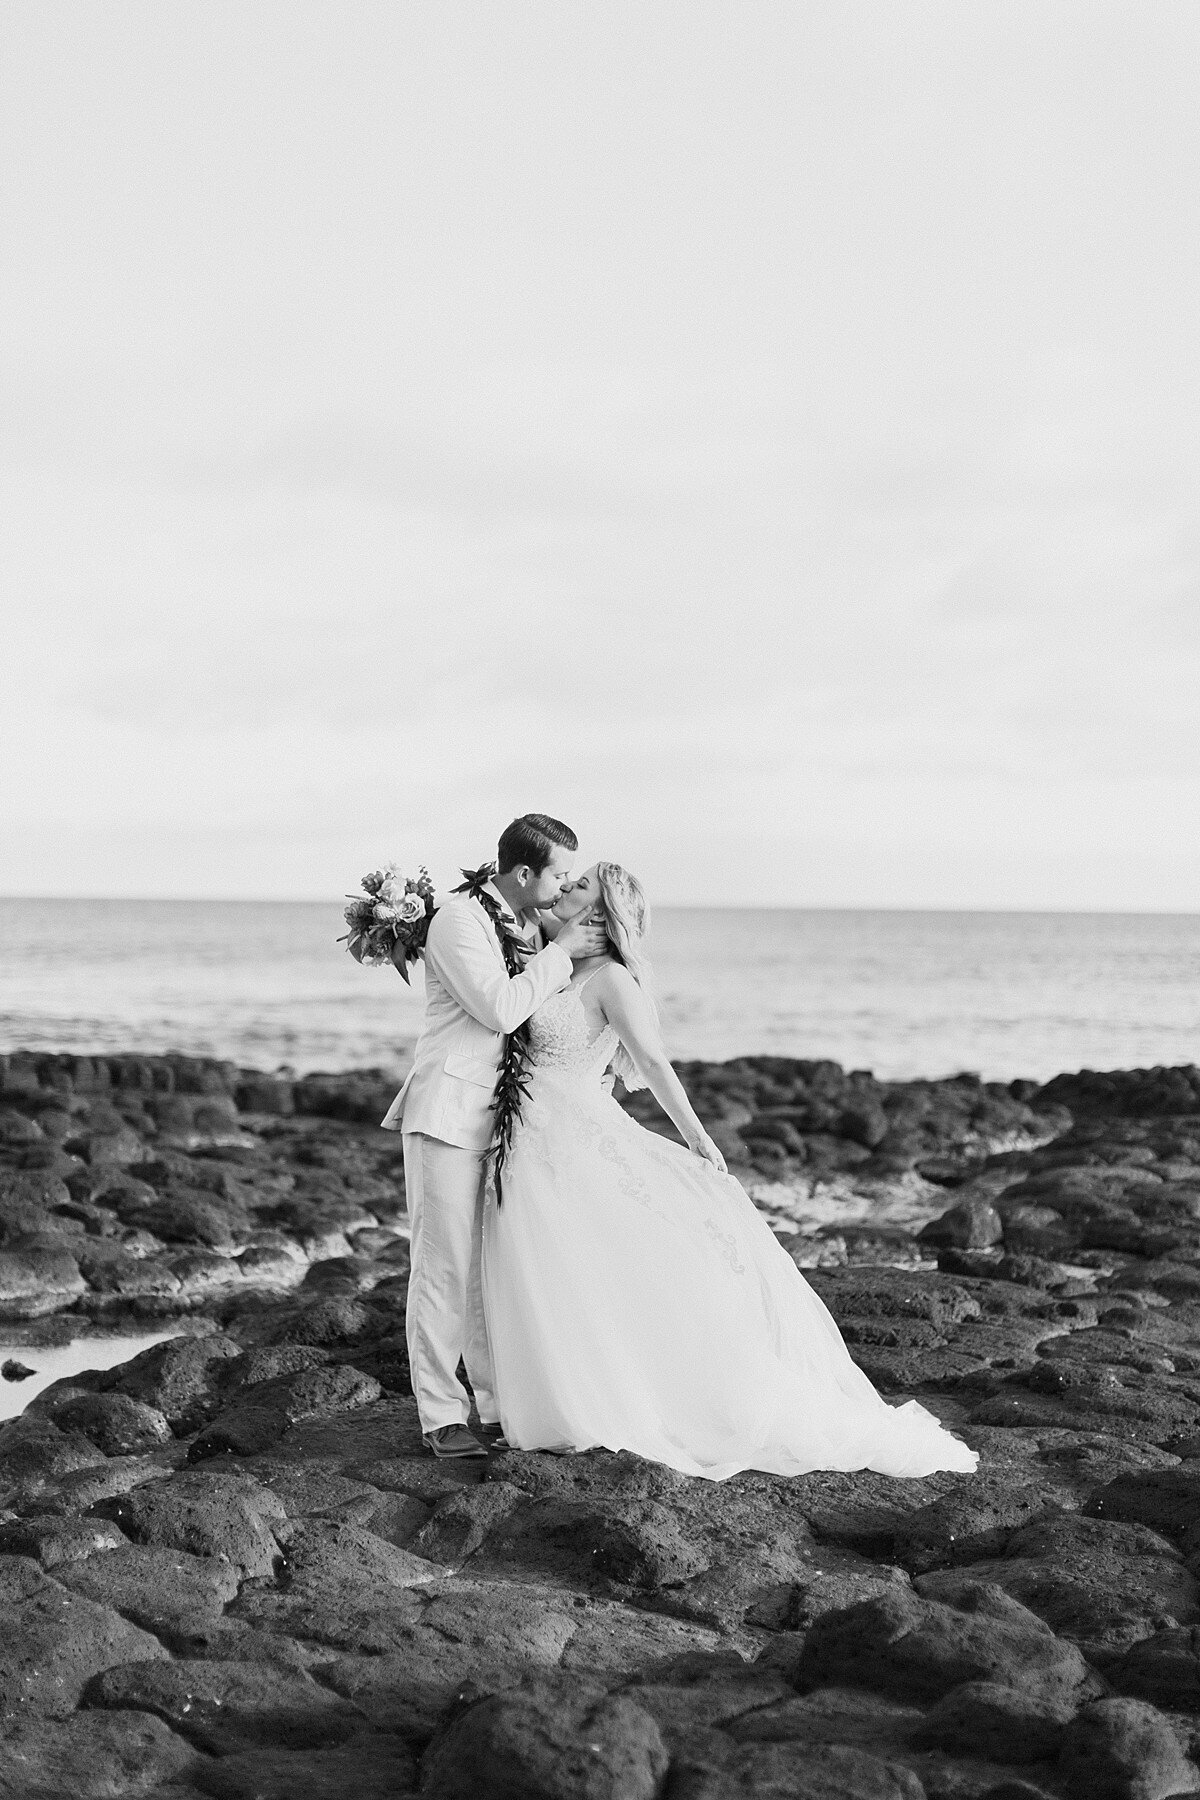 Stunning Hawaii Destination Wedding Photography on the island of Kauai.